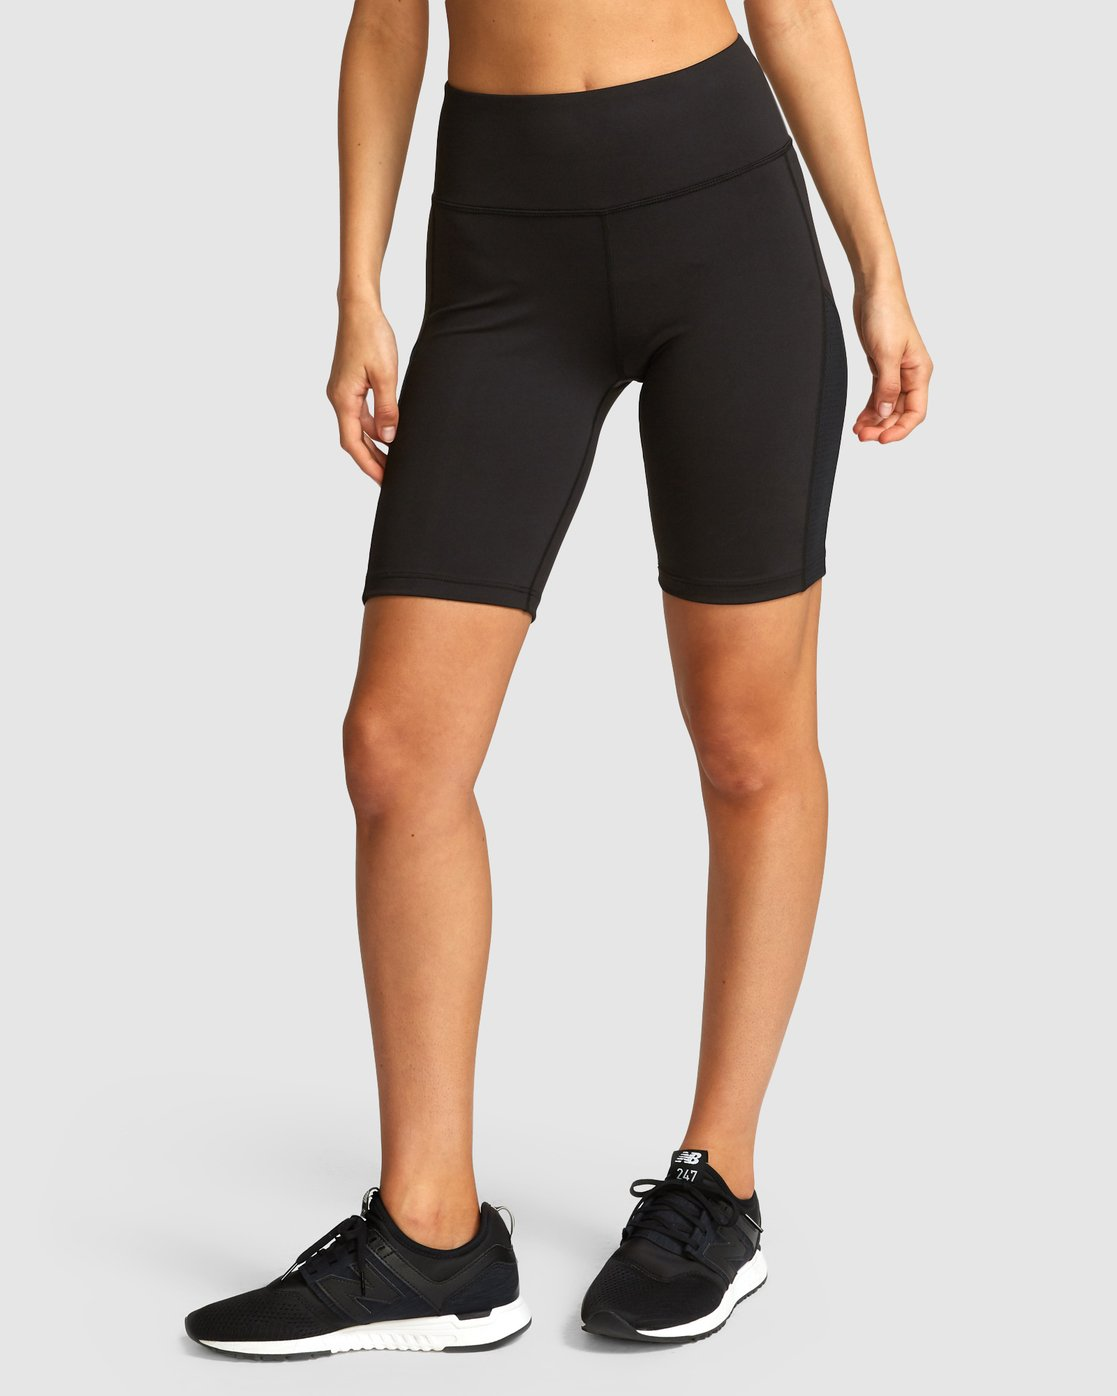 0 VA Di Shorts Black R491873 RVCA